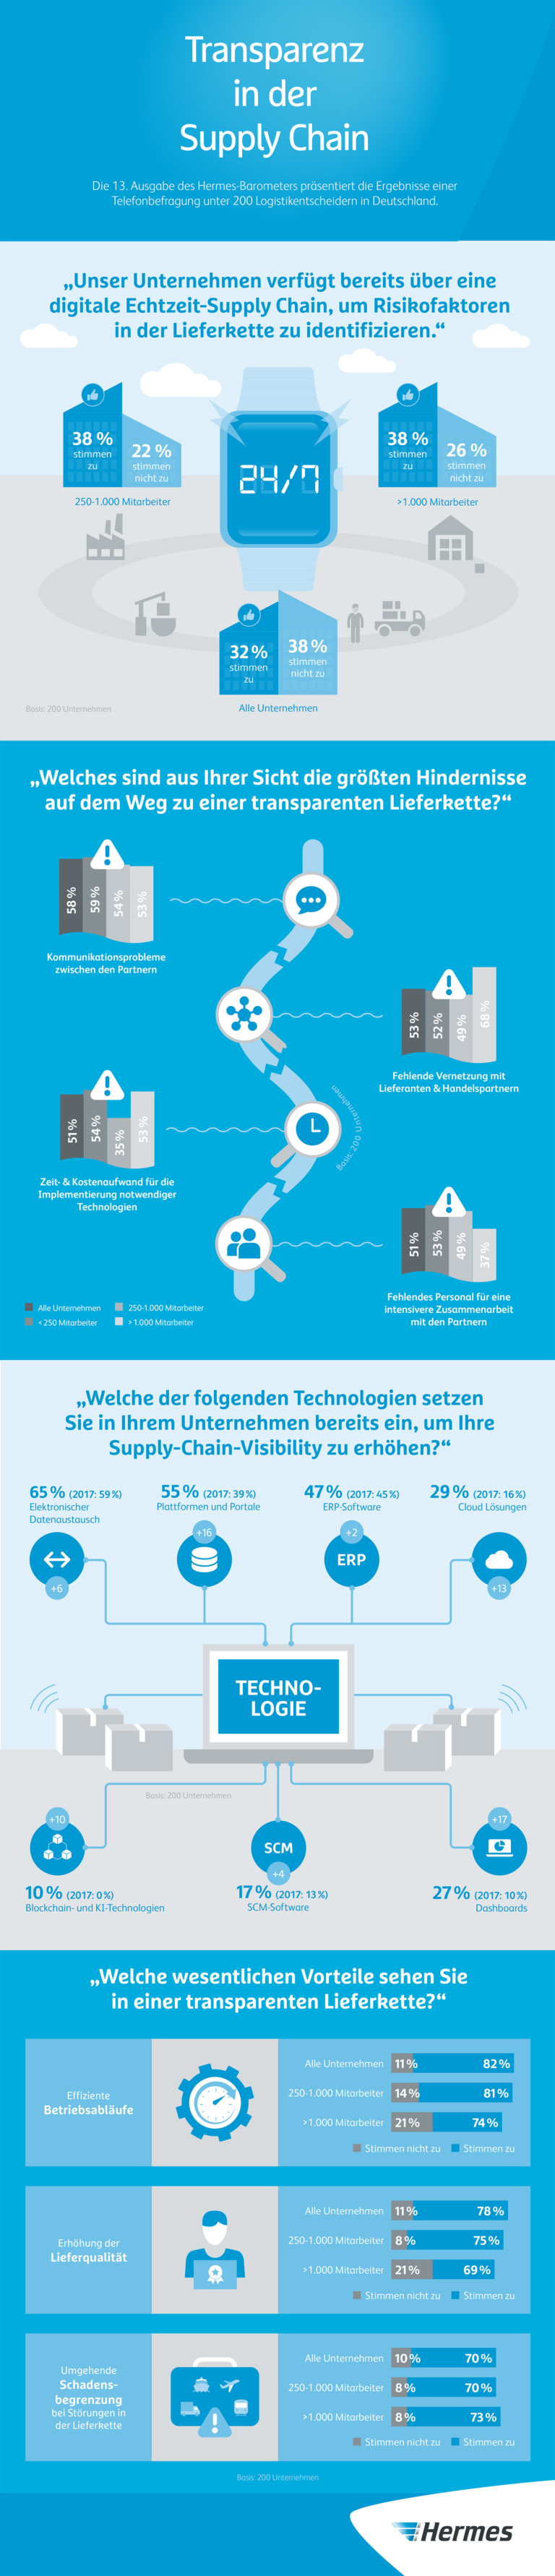 Infografik 13. Hermes-Barometer: Transparenz in der Supply Chain – Einsatz von digitalen Technologien ist signifikant gestiegen (JPG)